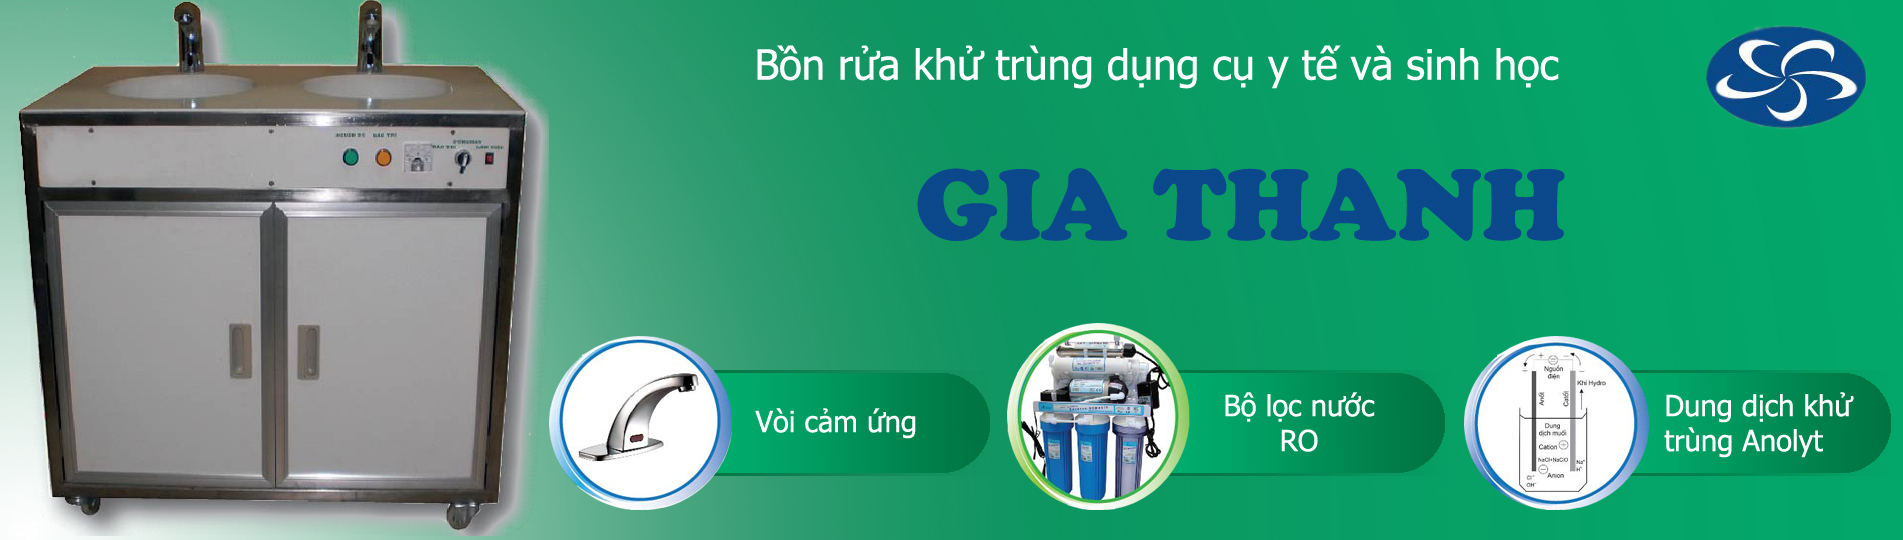 http://gianguyen.vn/gia-thanh